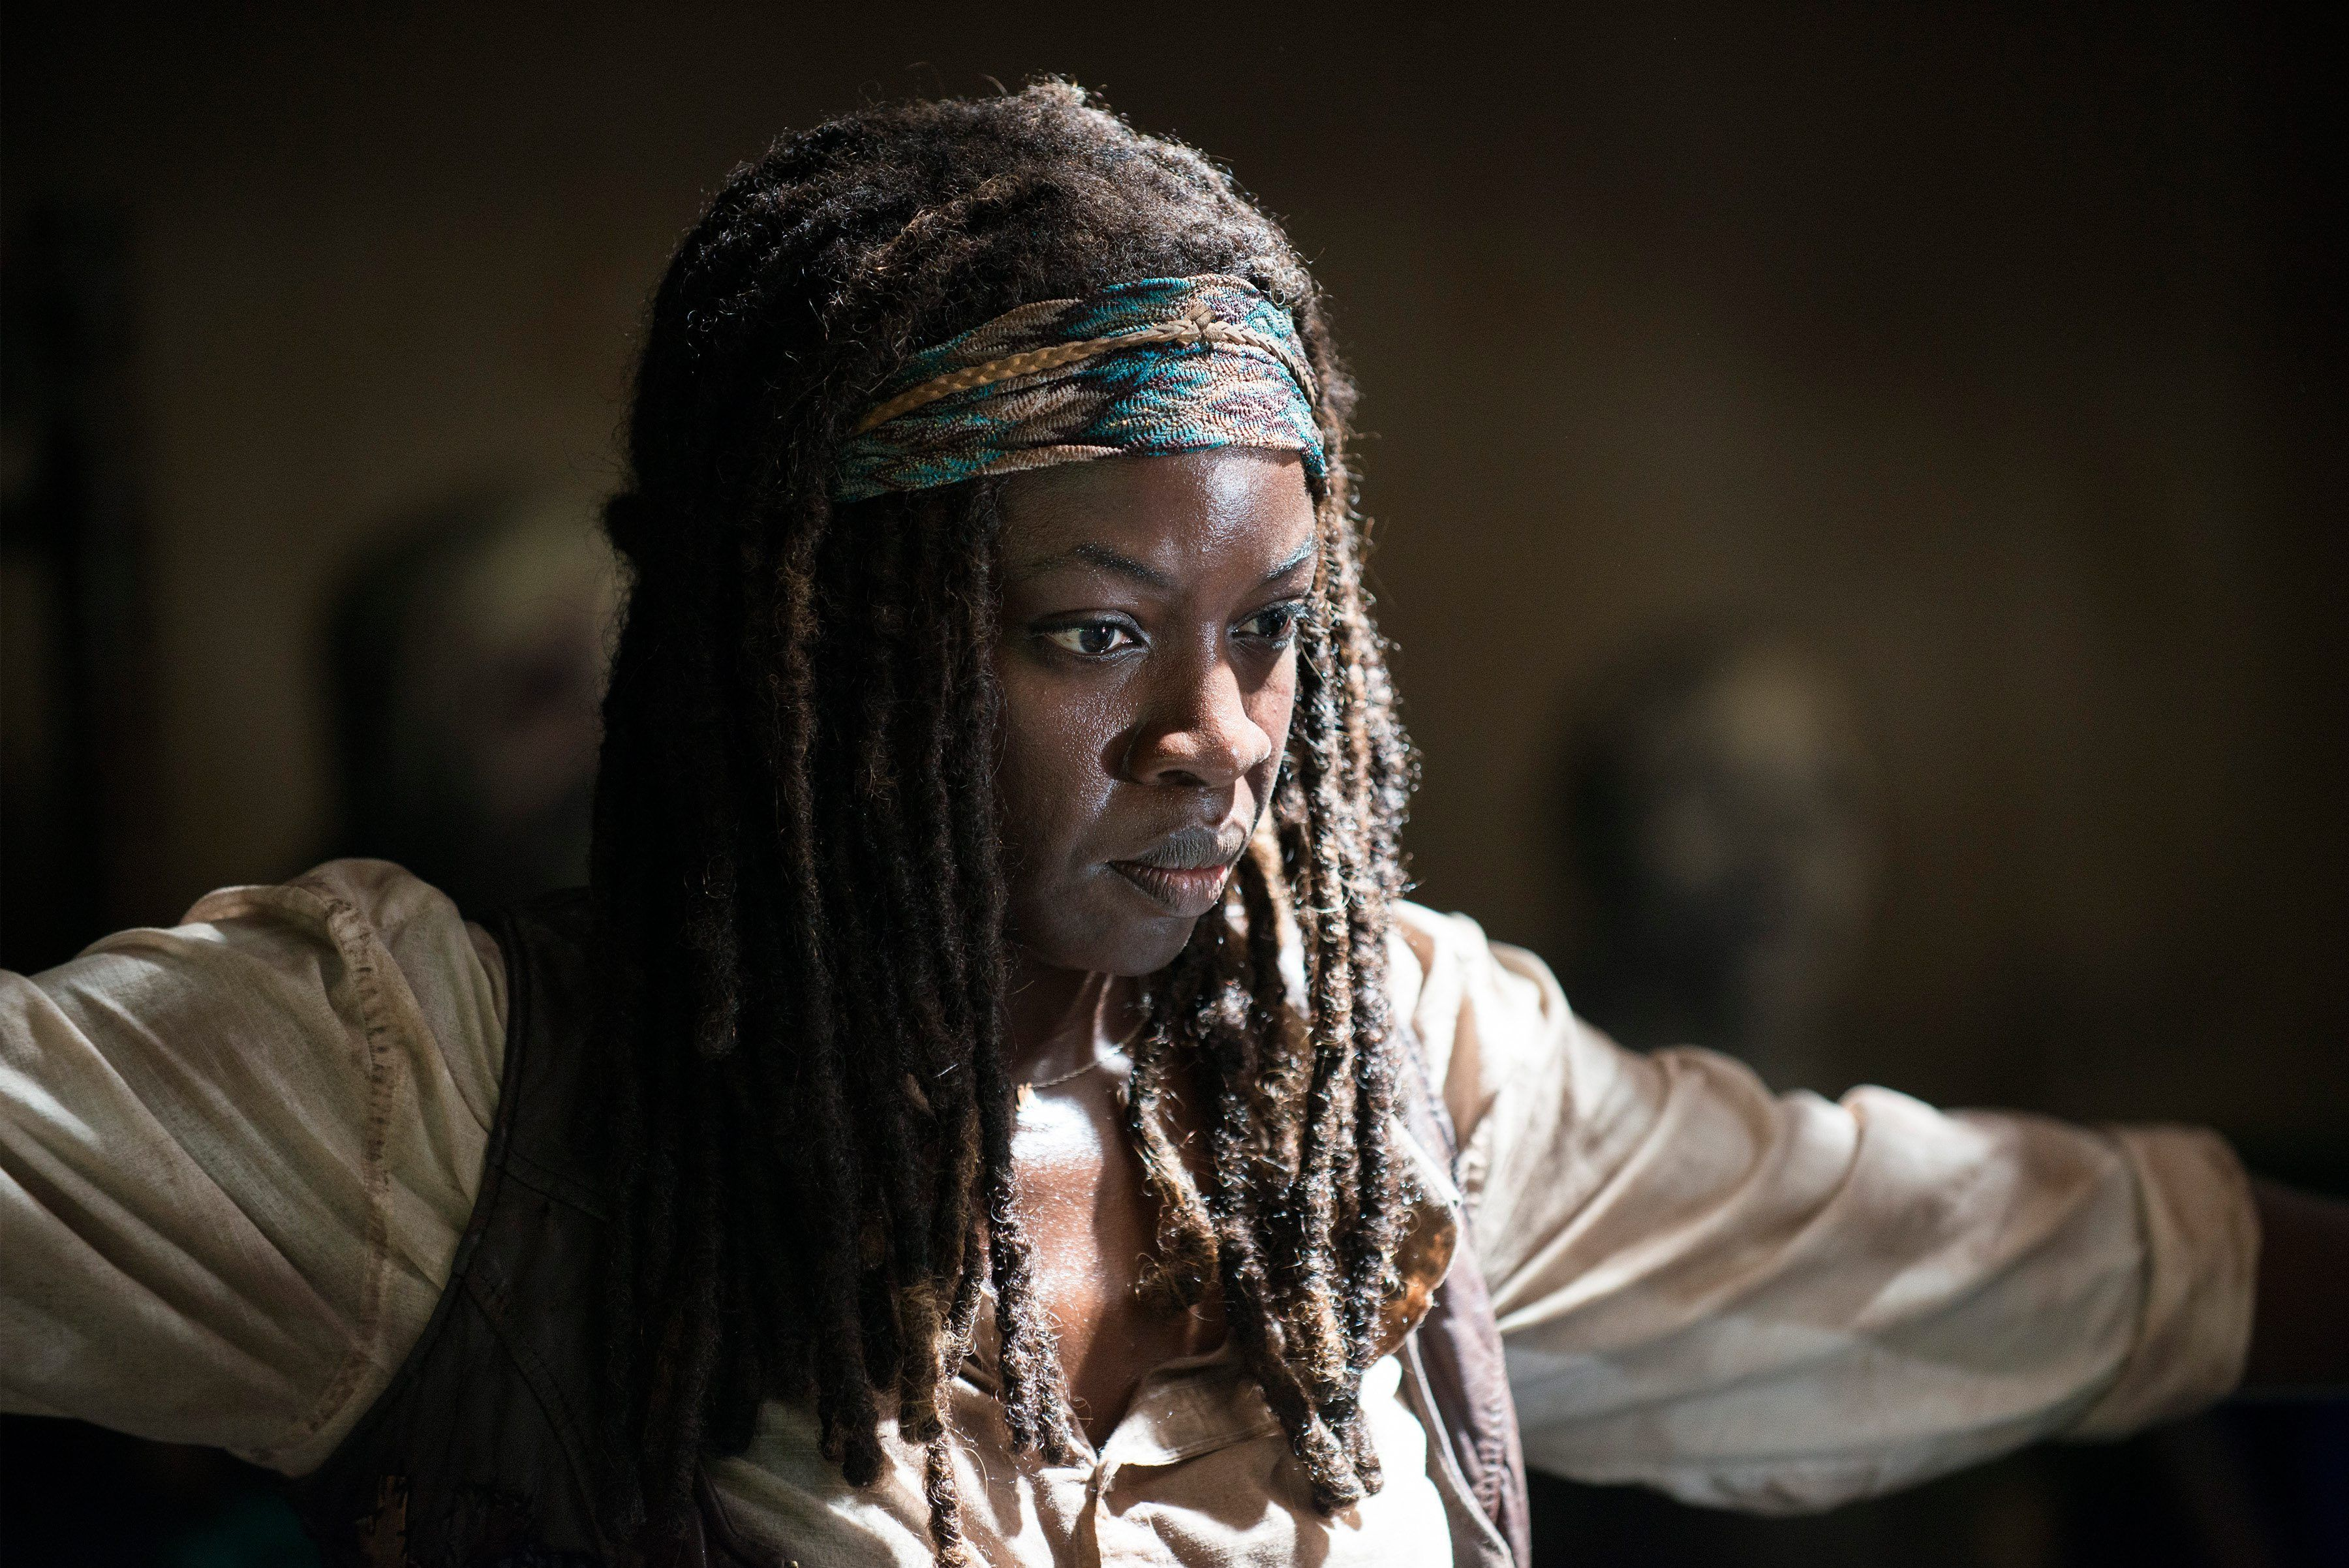 'The Walking Dead' Says Goodbye To Star Danai Gurira In Latest Episode - Fame10